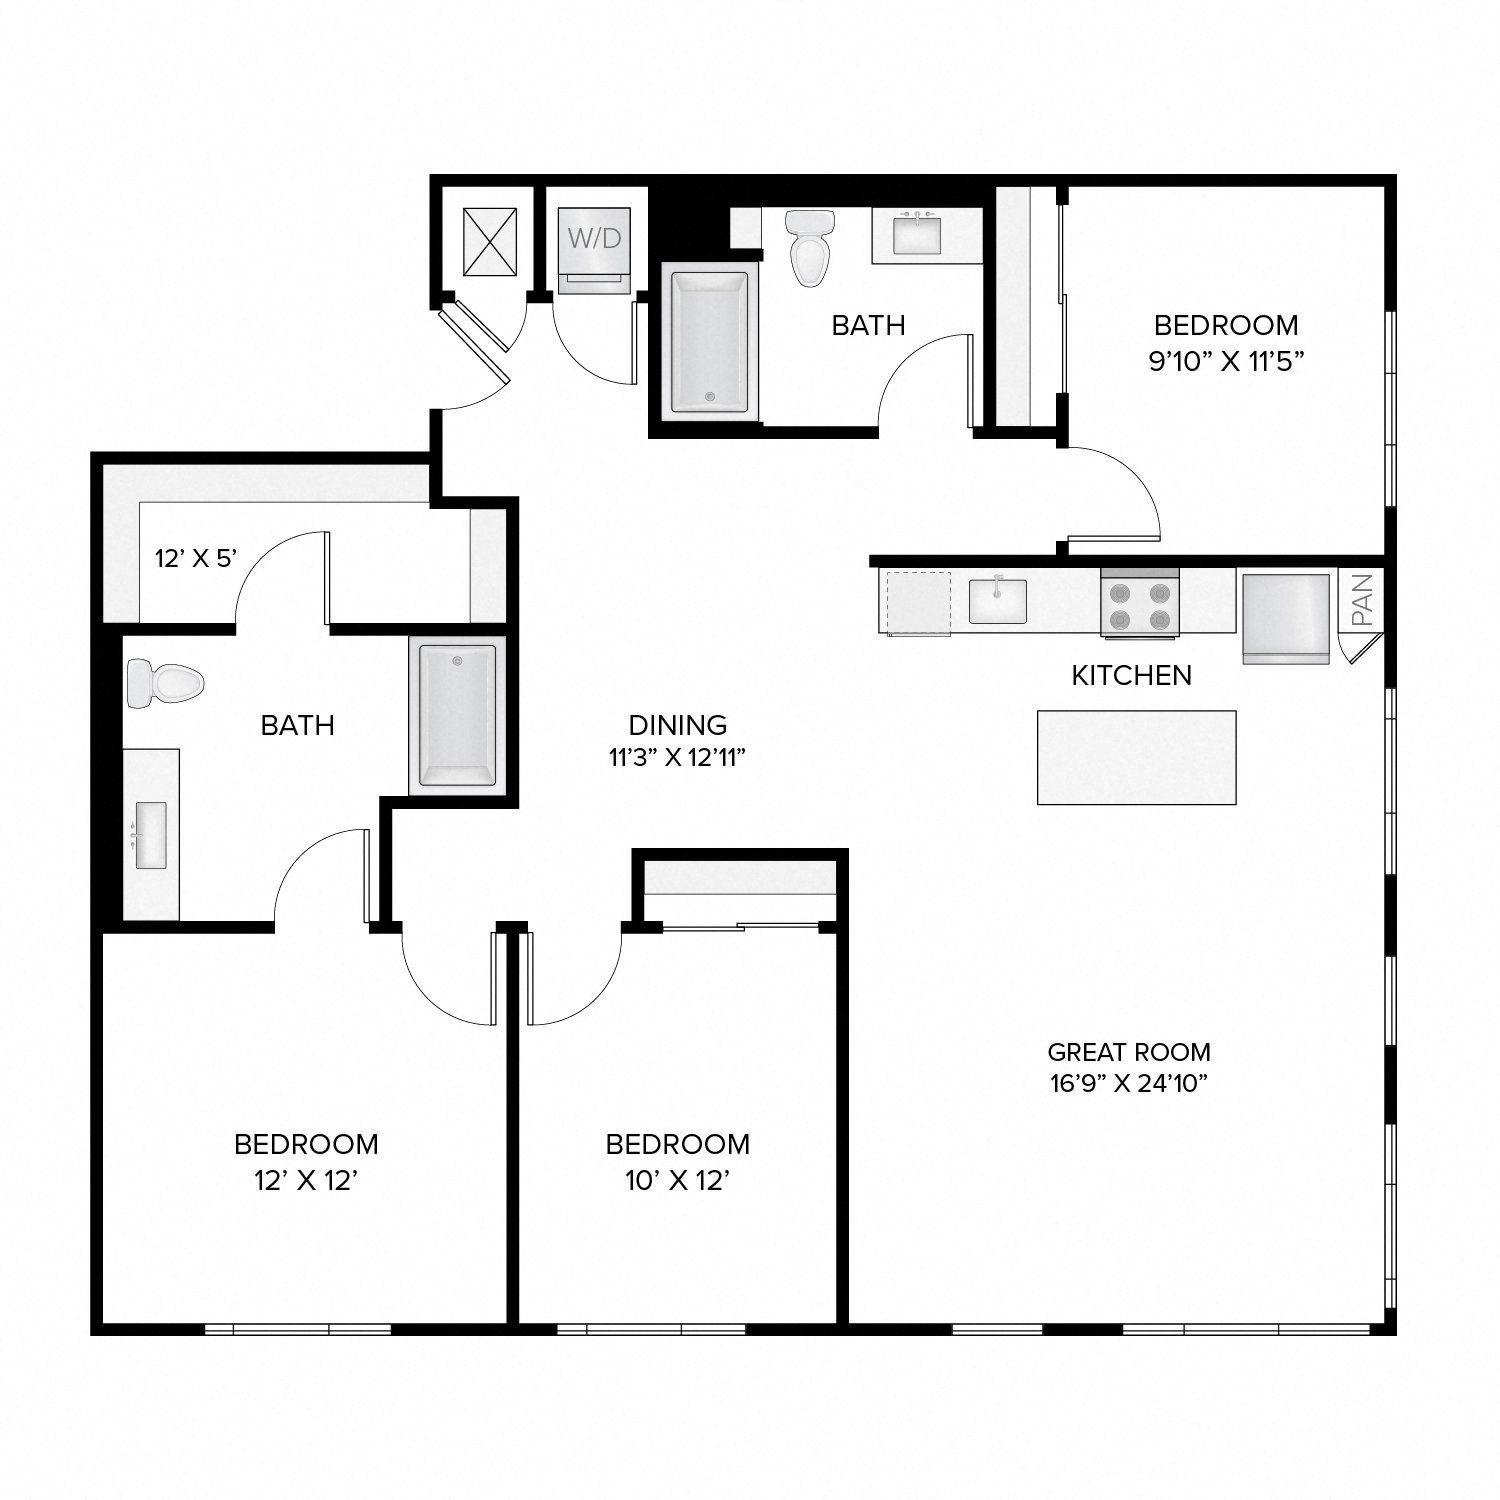 Diagram of the Fallon floor plan. Three bedrooms, two bathrooms, an open kitchen and living area, and a washer dryer.